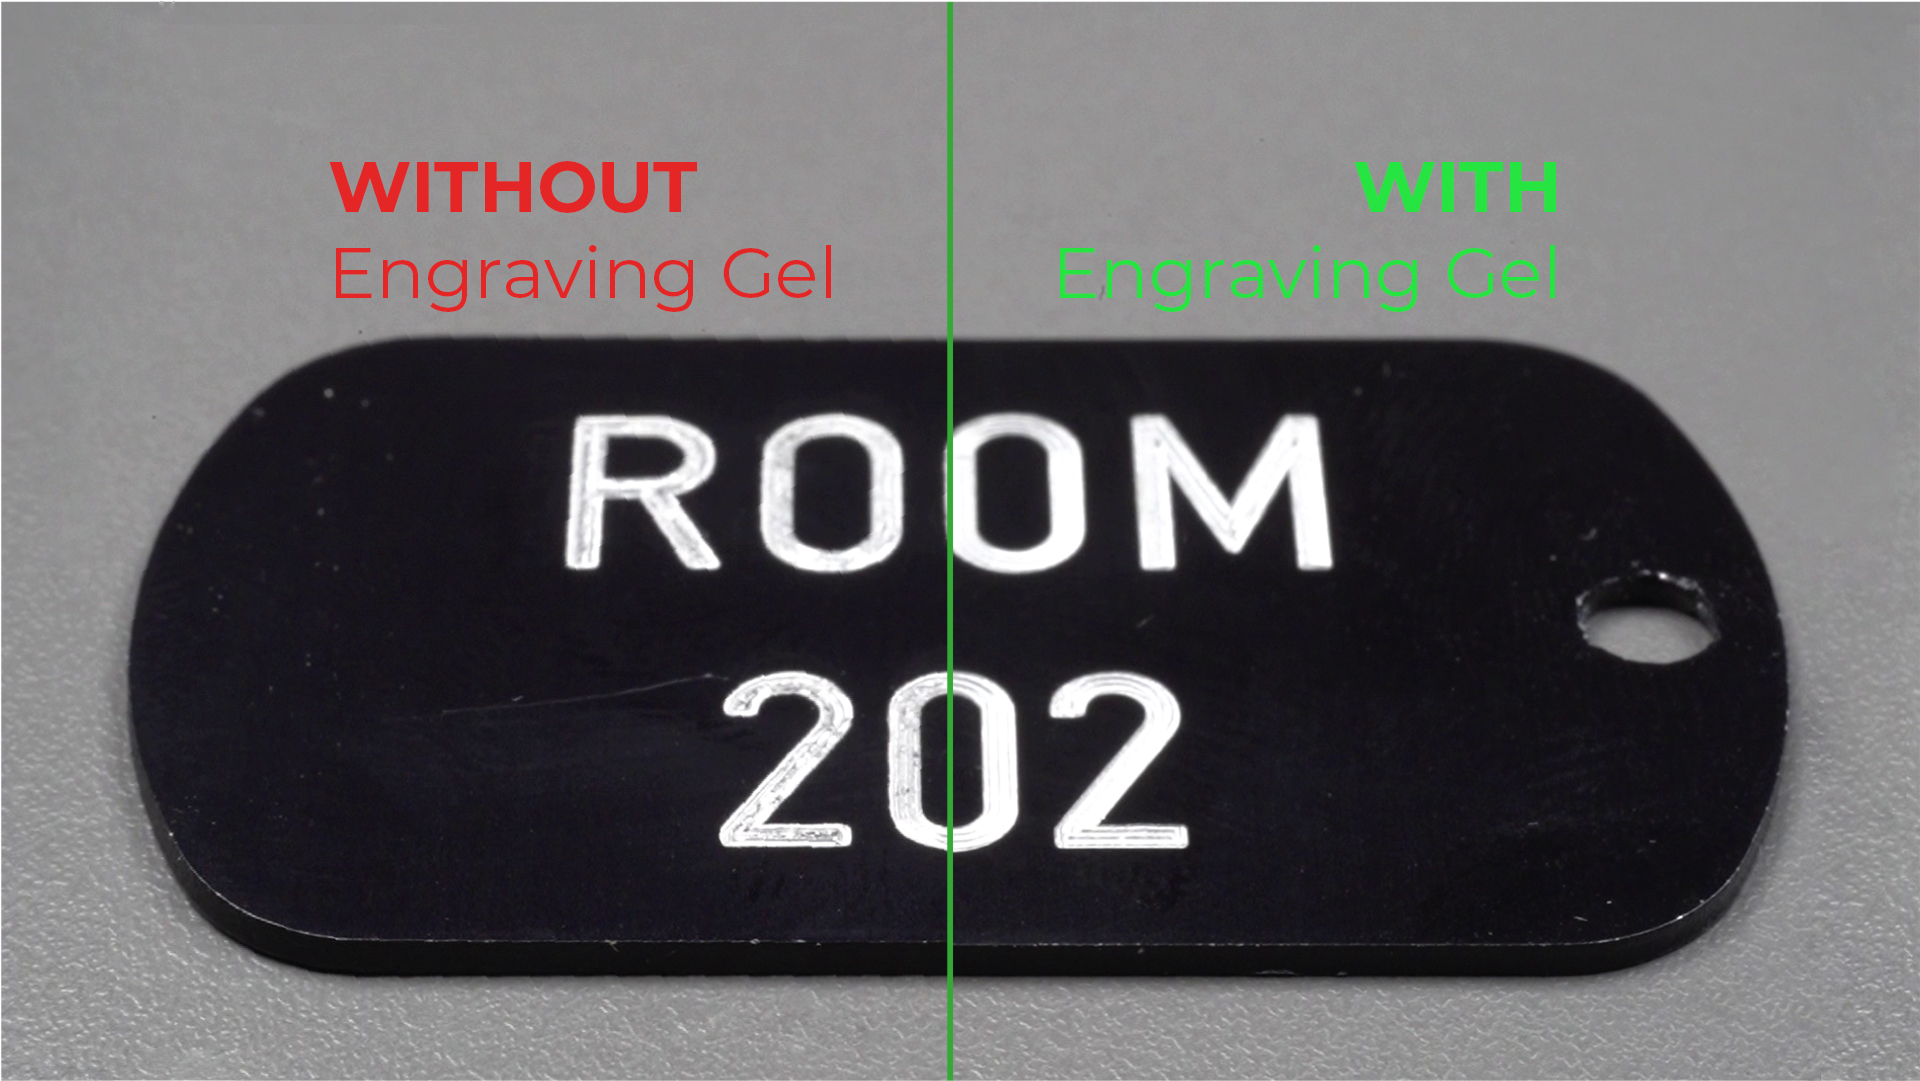 Engraving-gel comparison of with and without